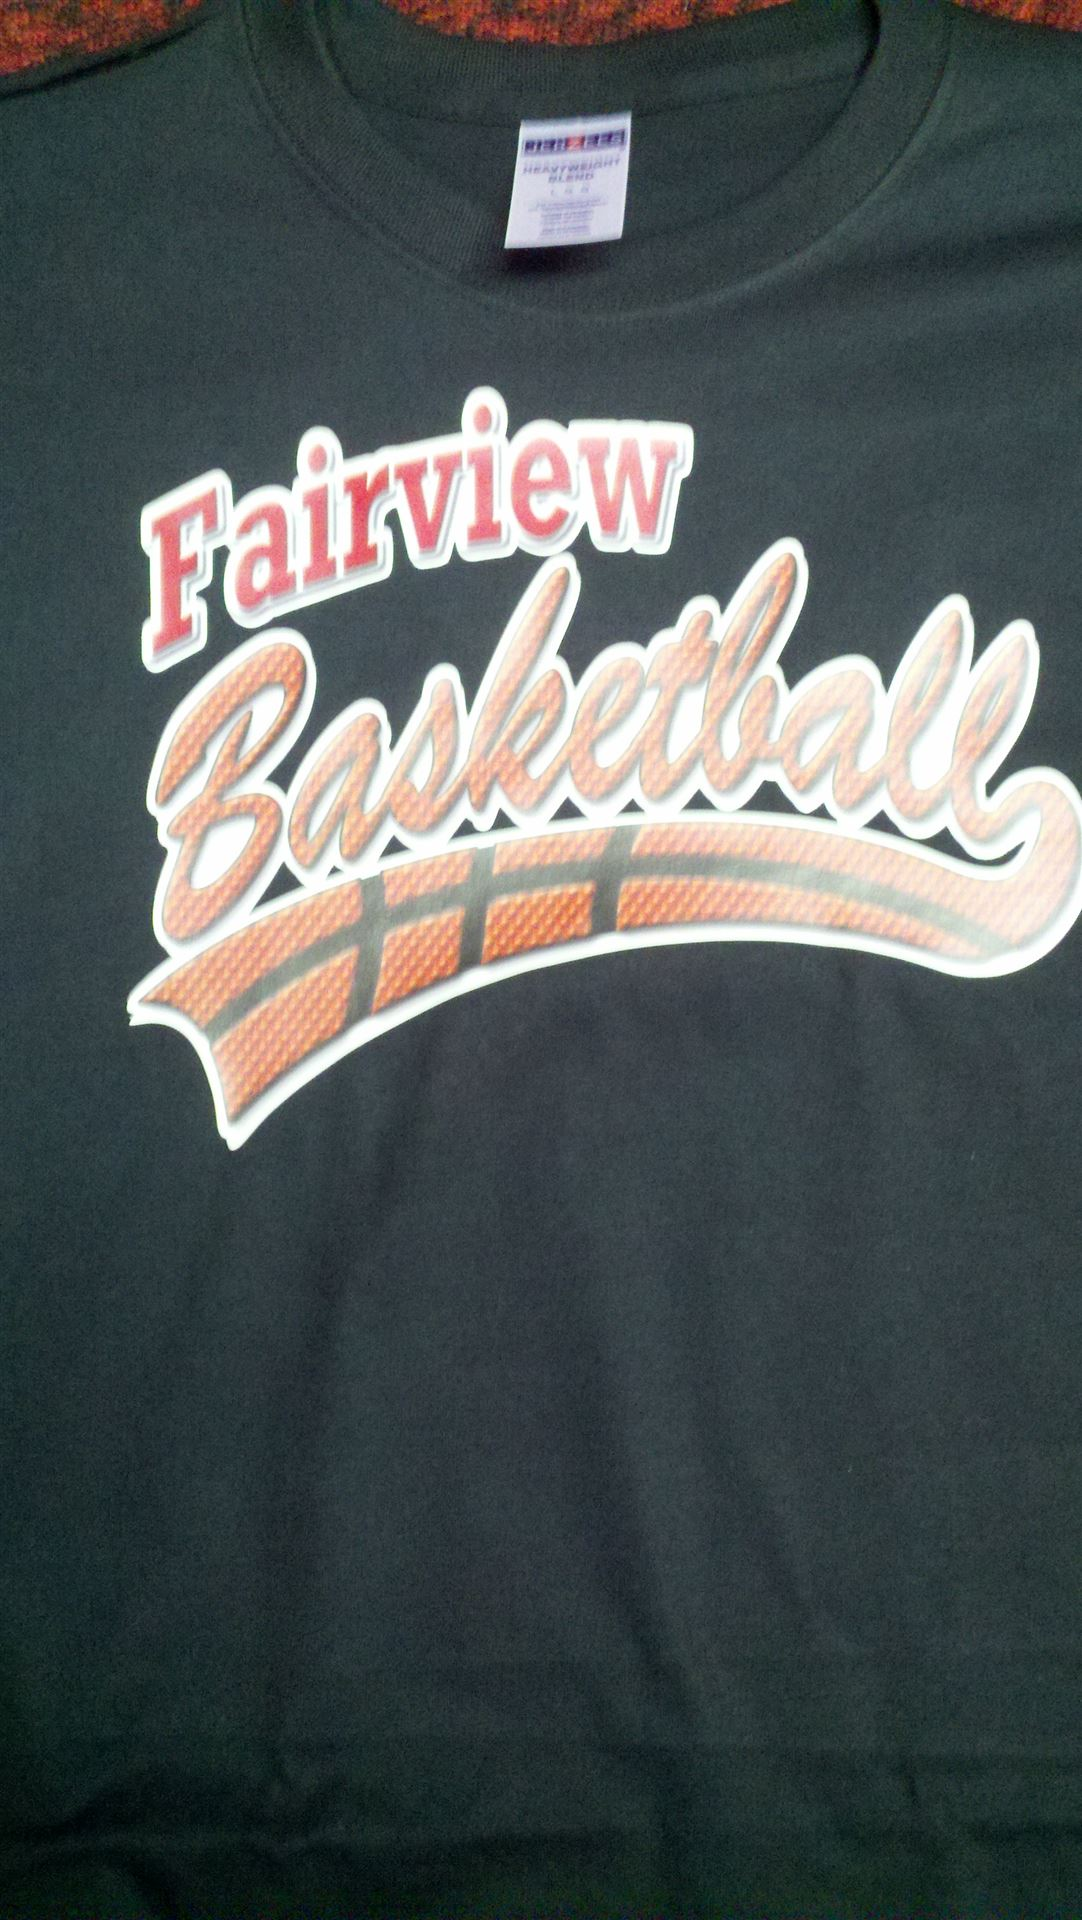 Fairview shirt design 37